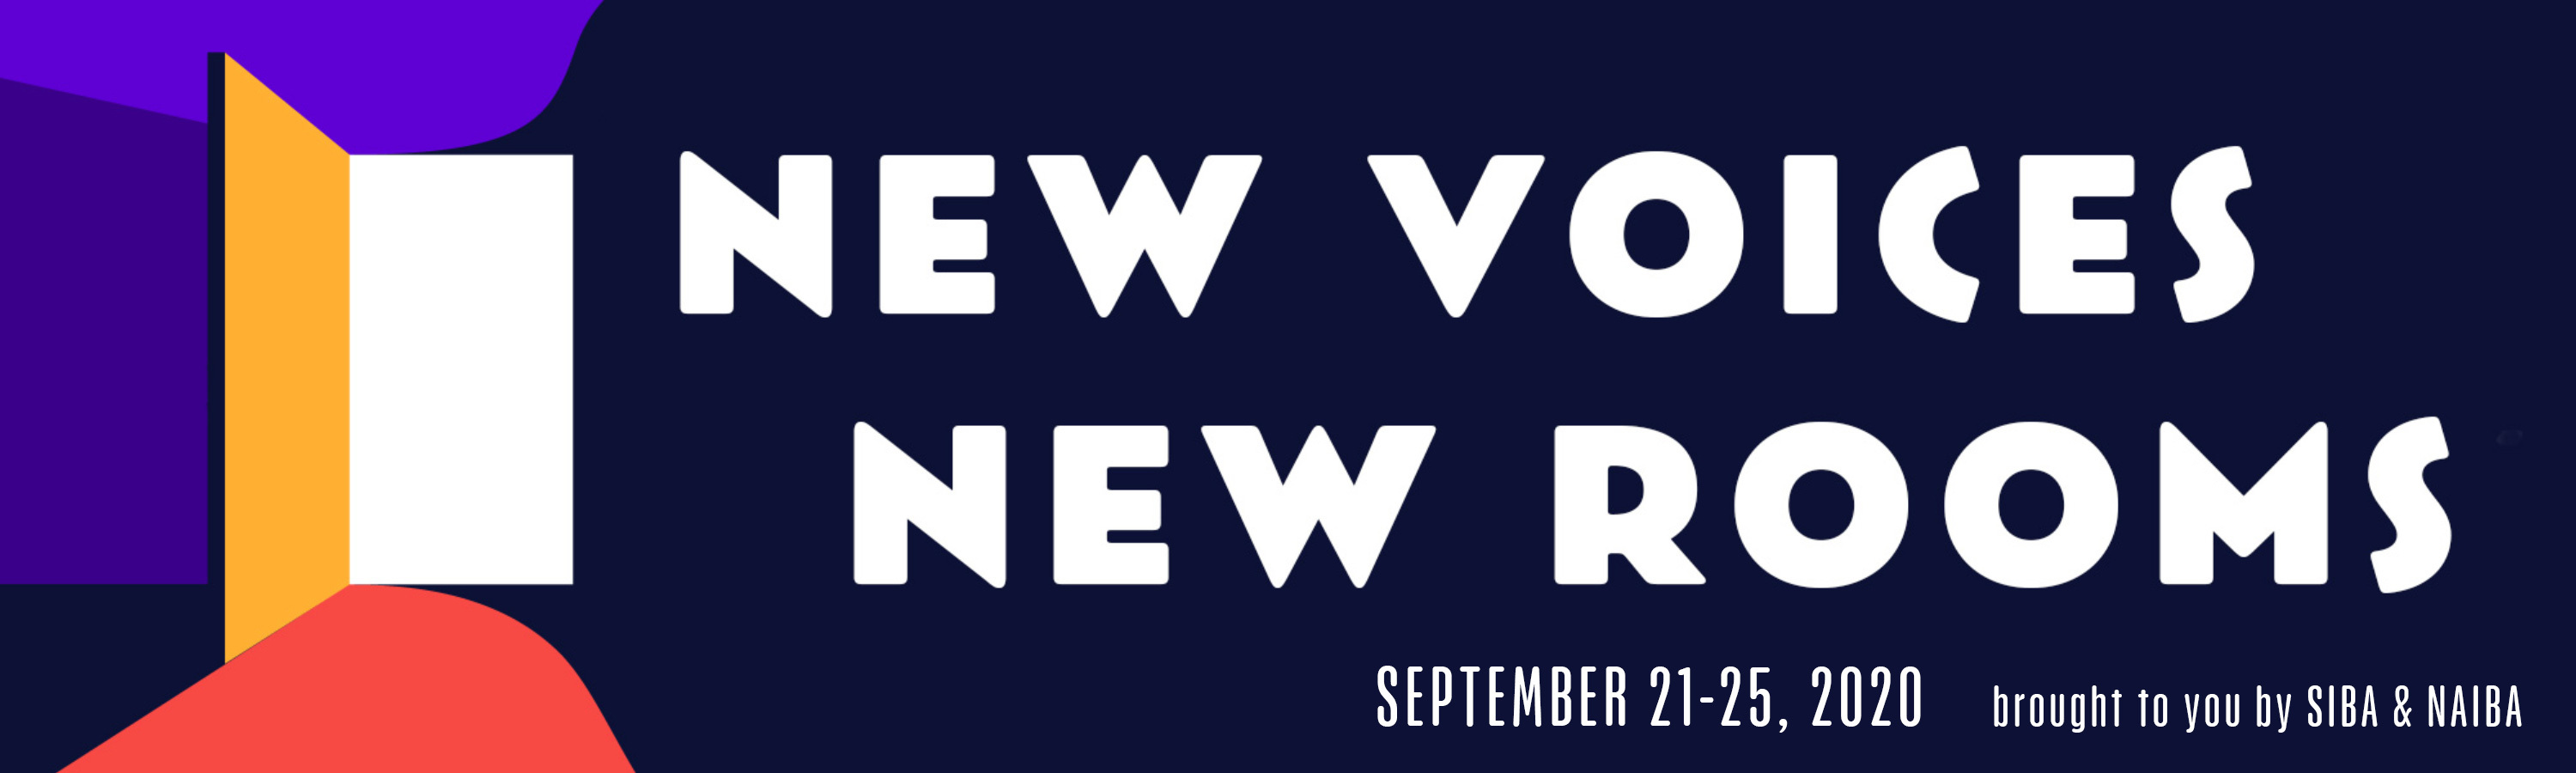 NewVoicesNewRooms